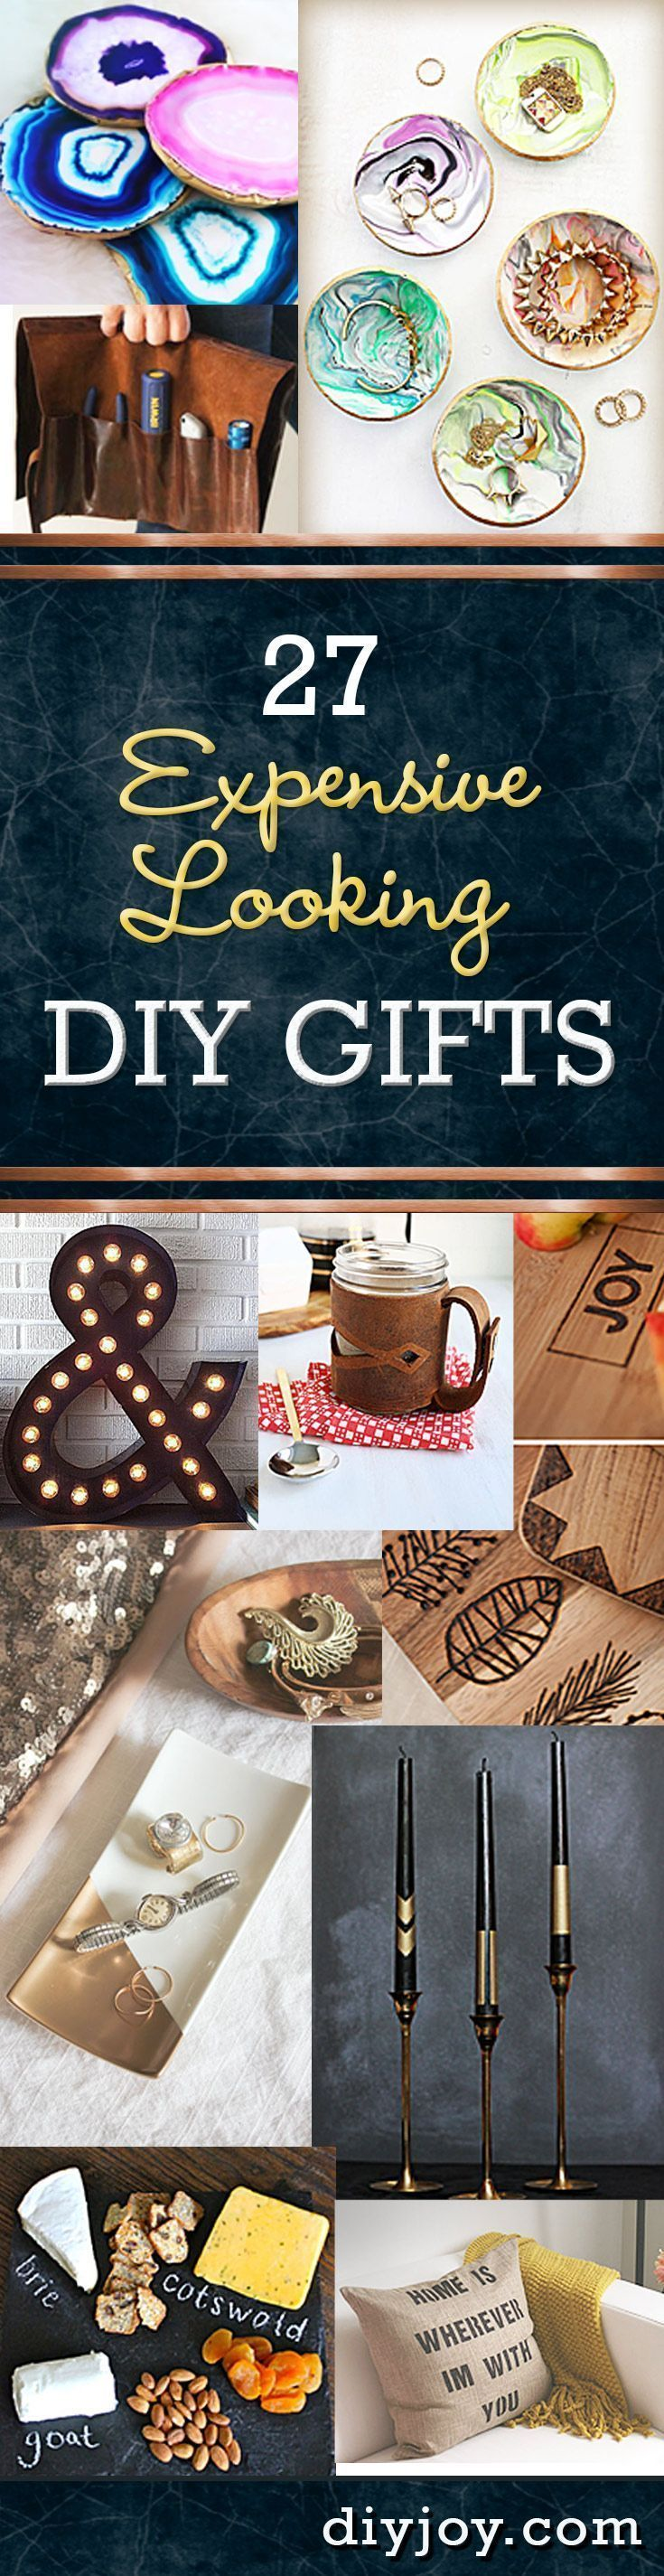 DIY Gifts and Creative Crafts and Projects that Make Cool DIY Gift Ideas CHEAP! Follow me for DIY and decor ideas :)